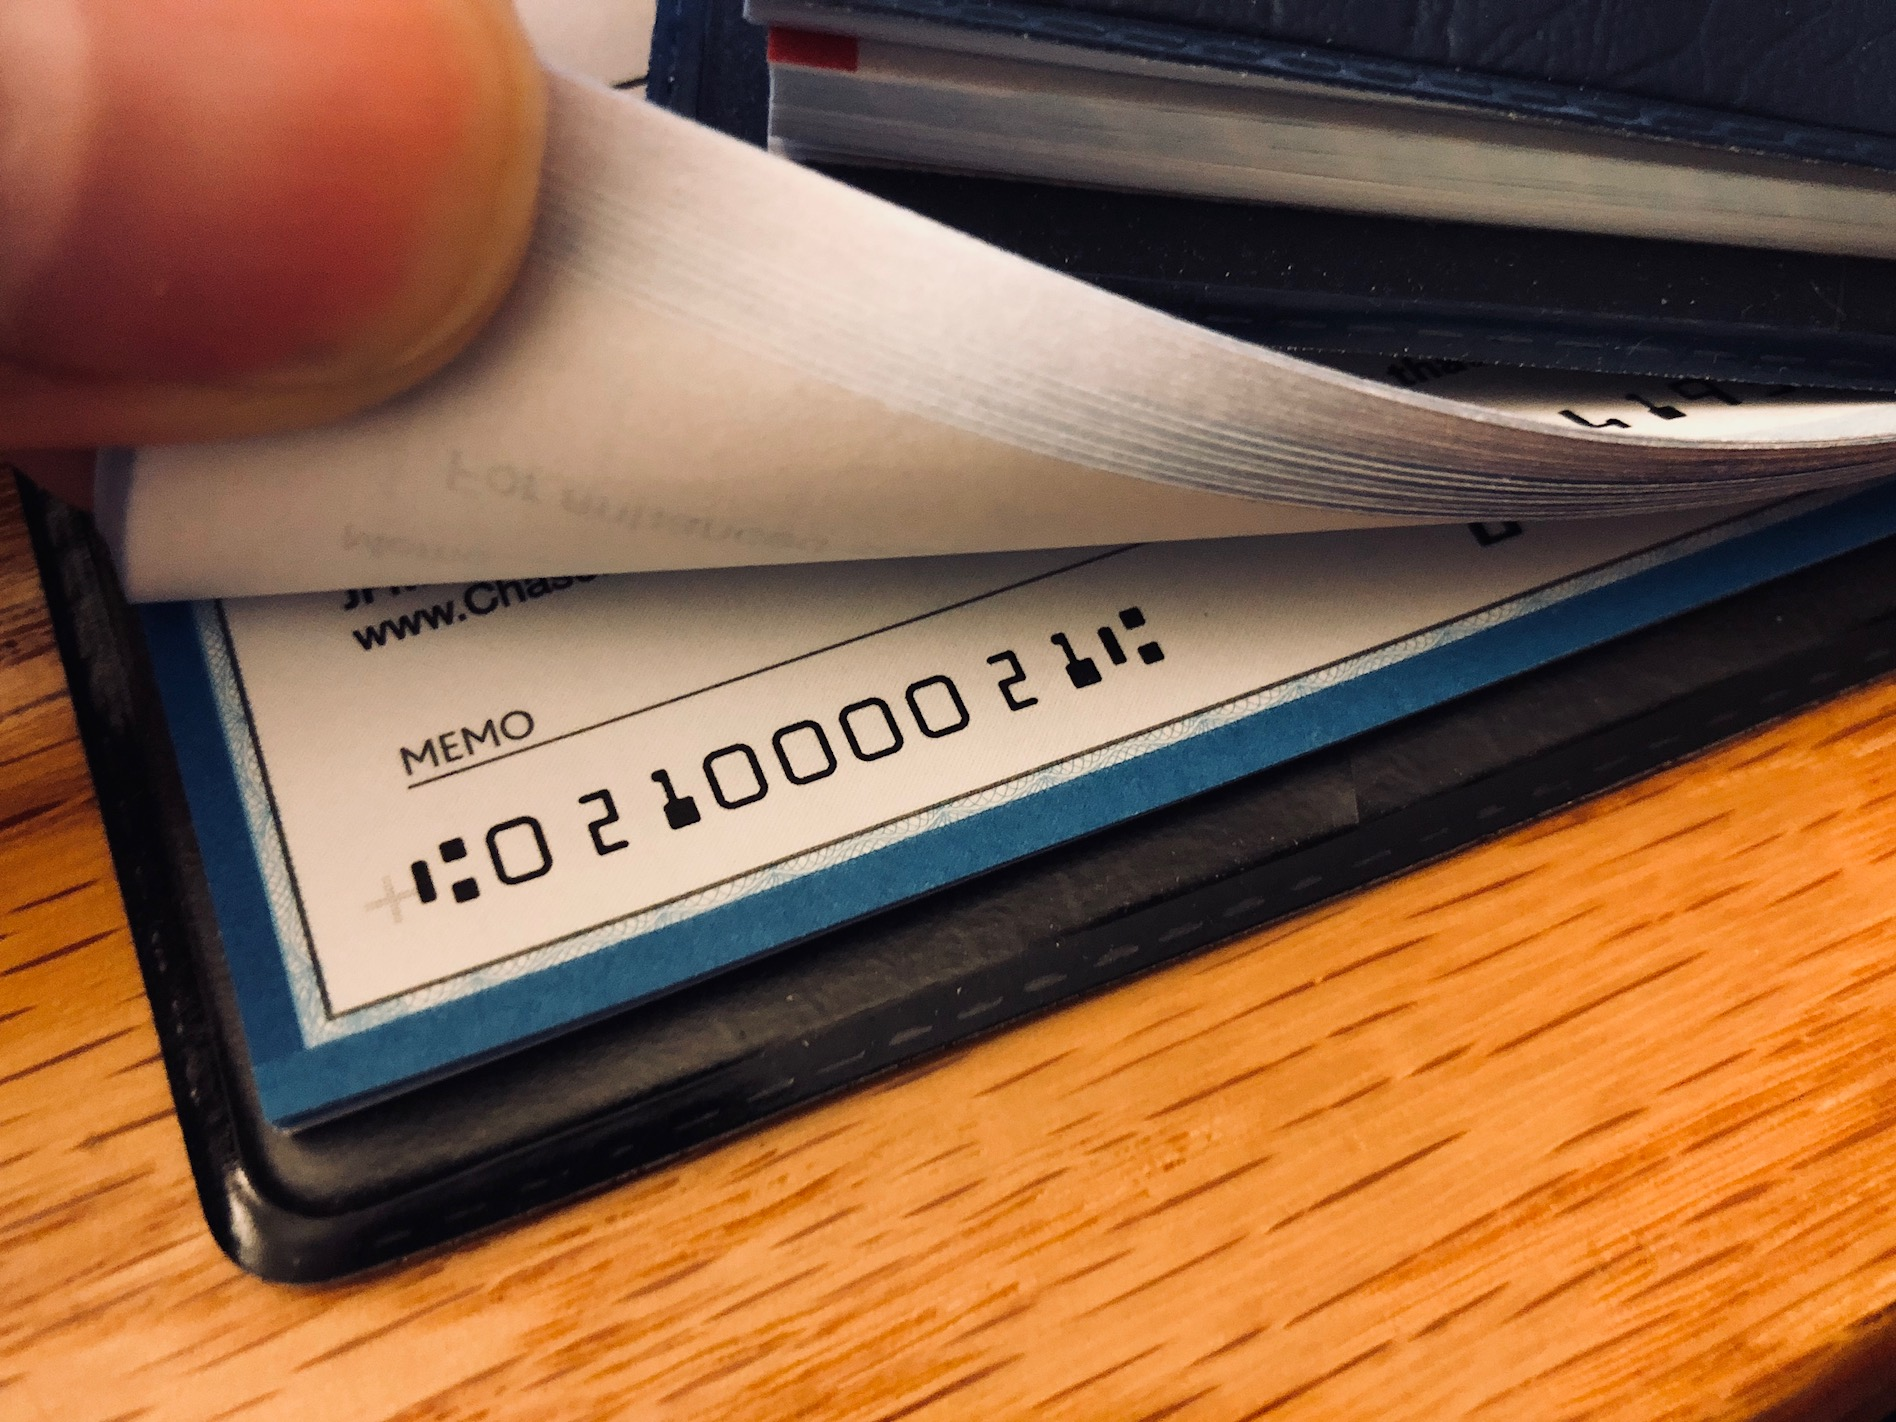 do savings accounts have routing numbers?